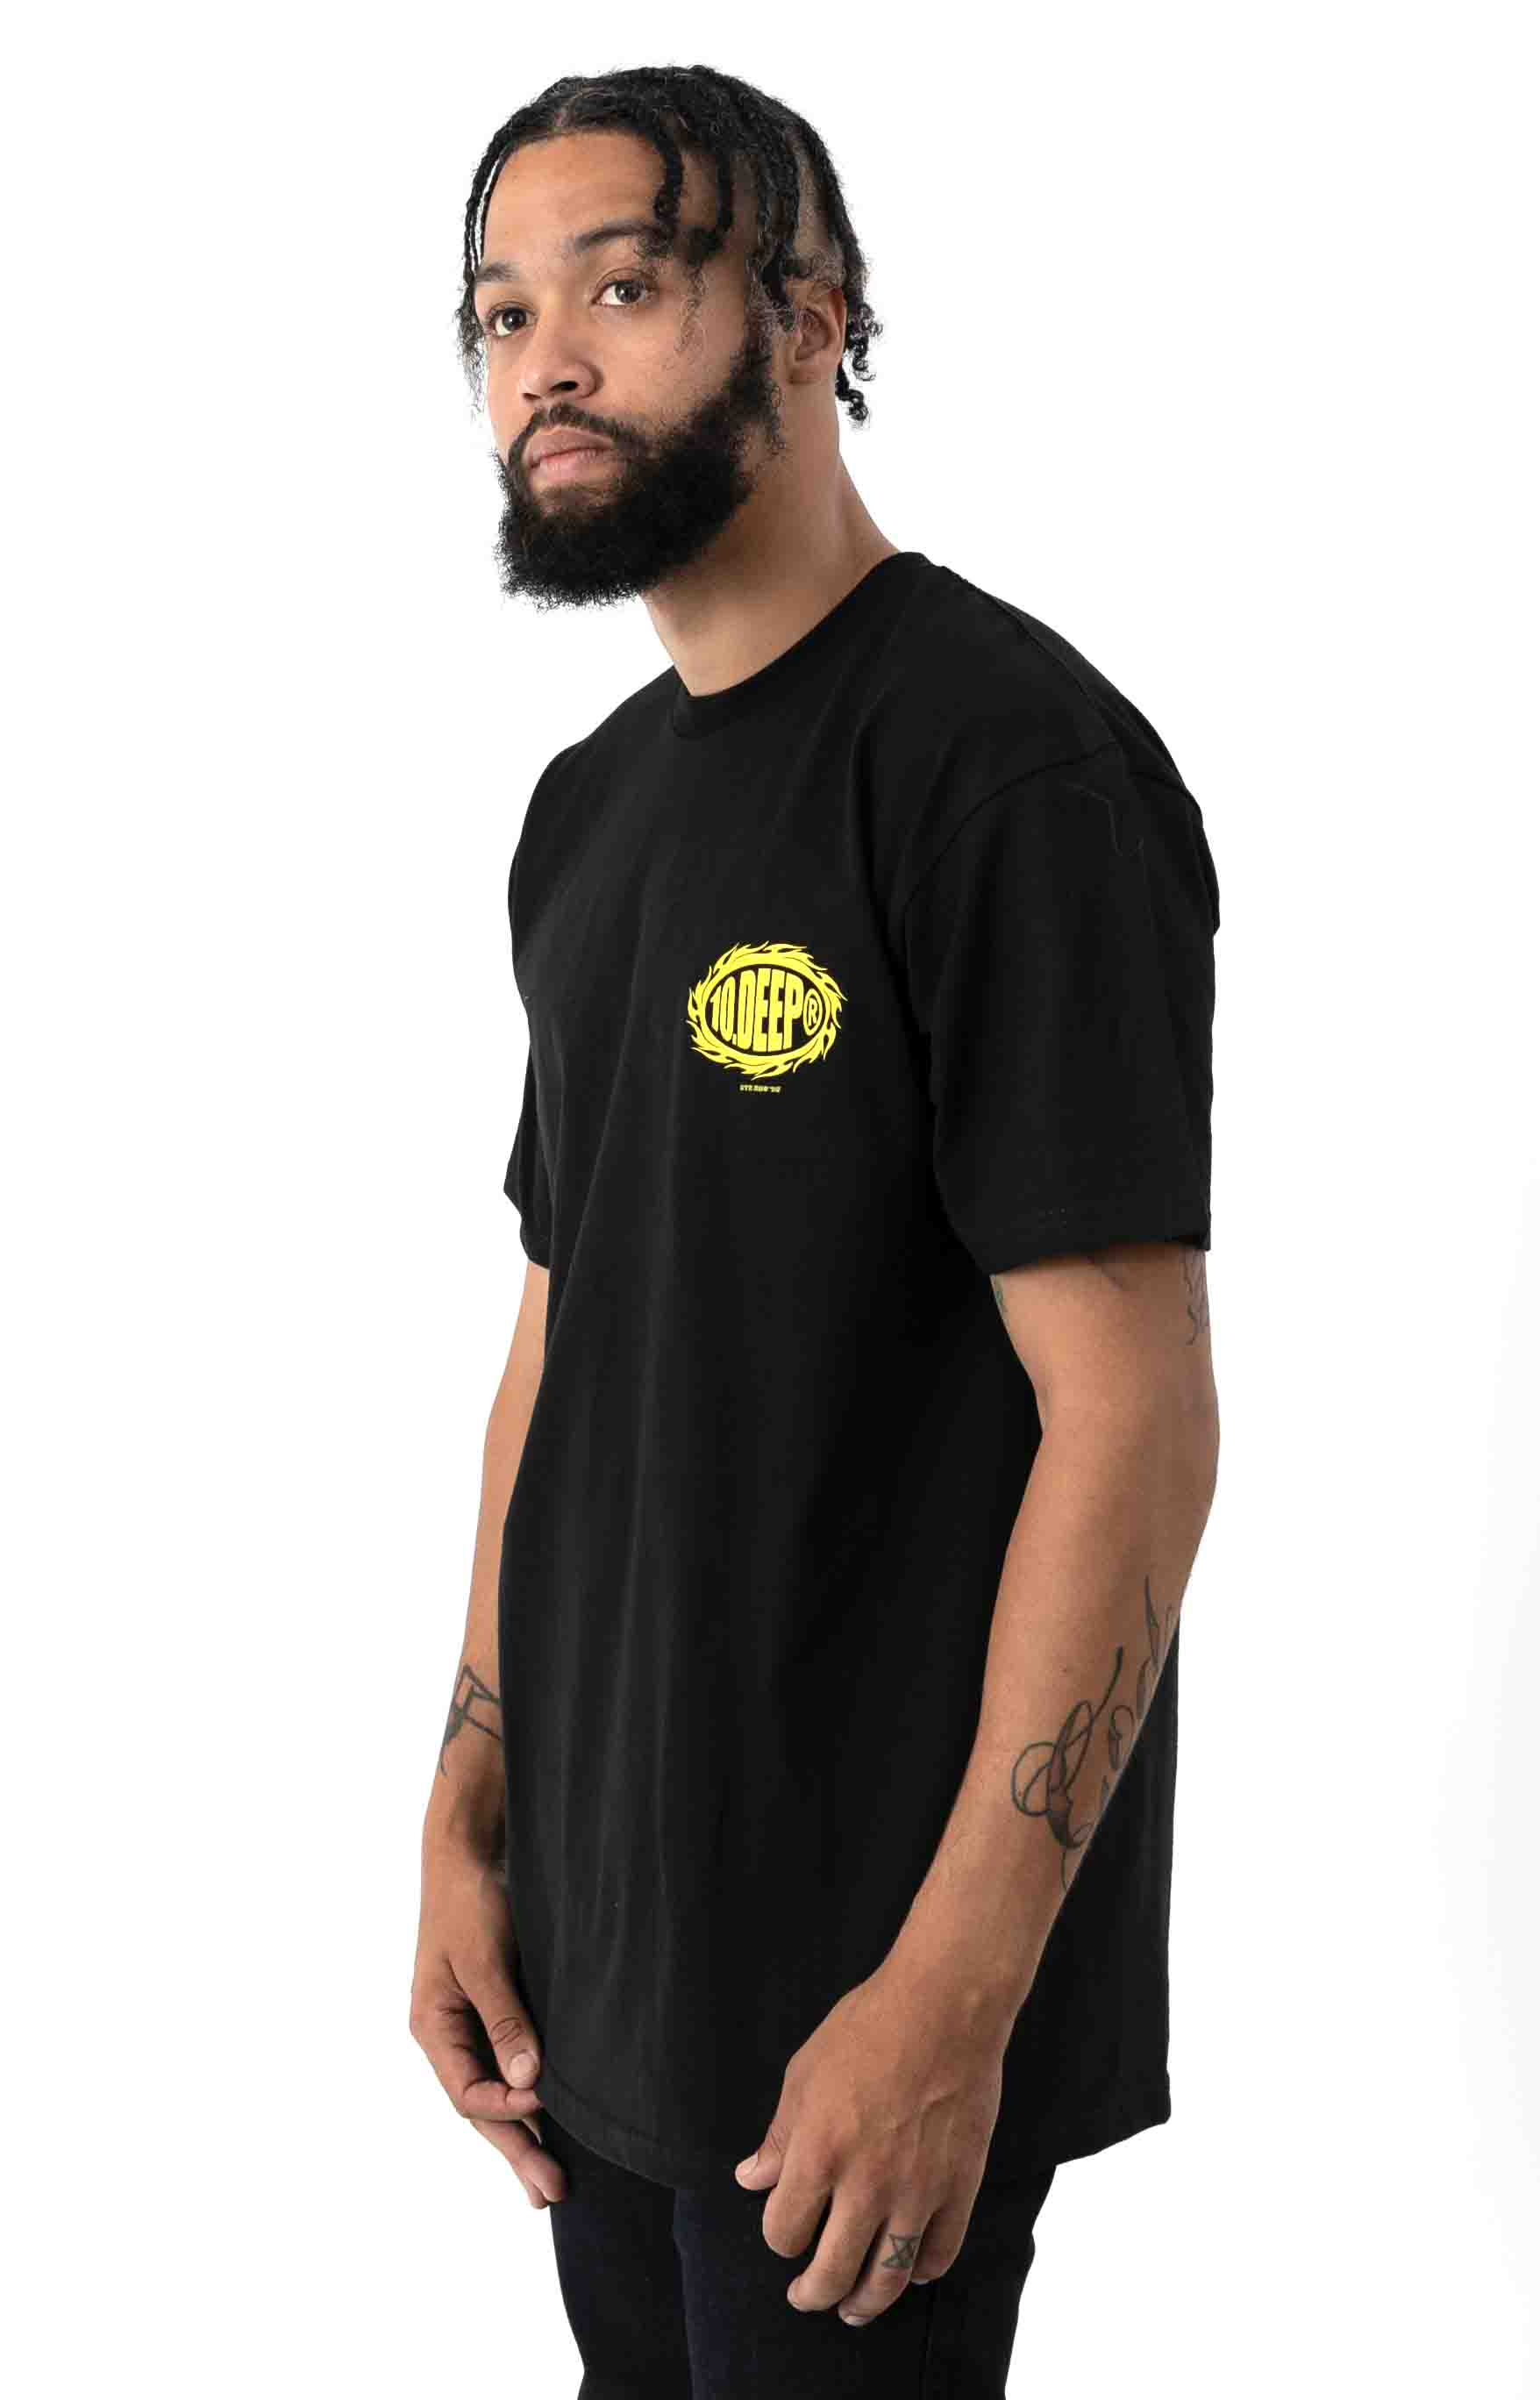 Flat Earth T-Shirt - Black 3